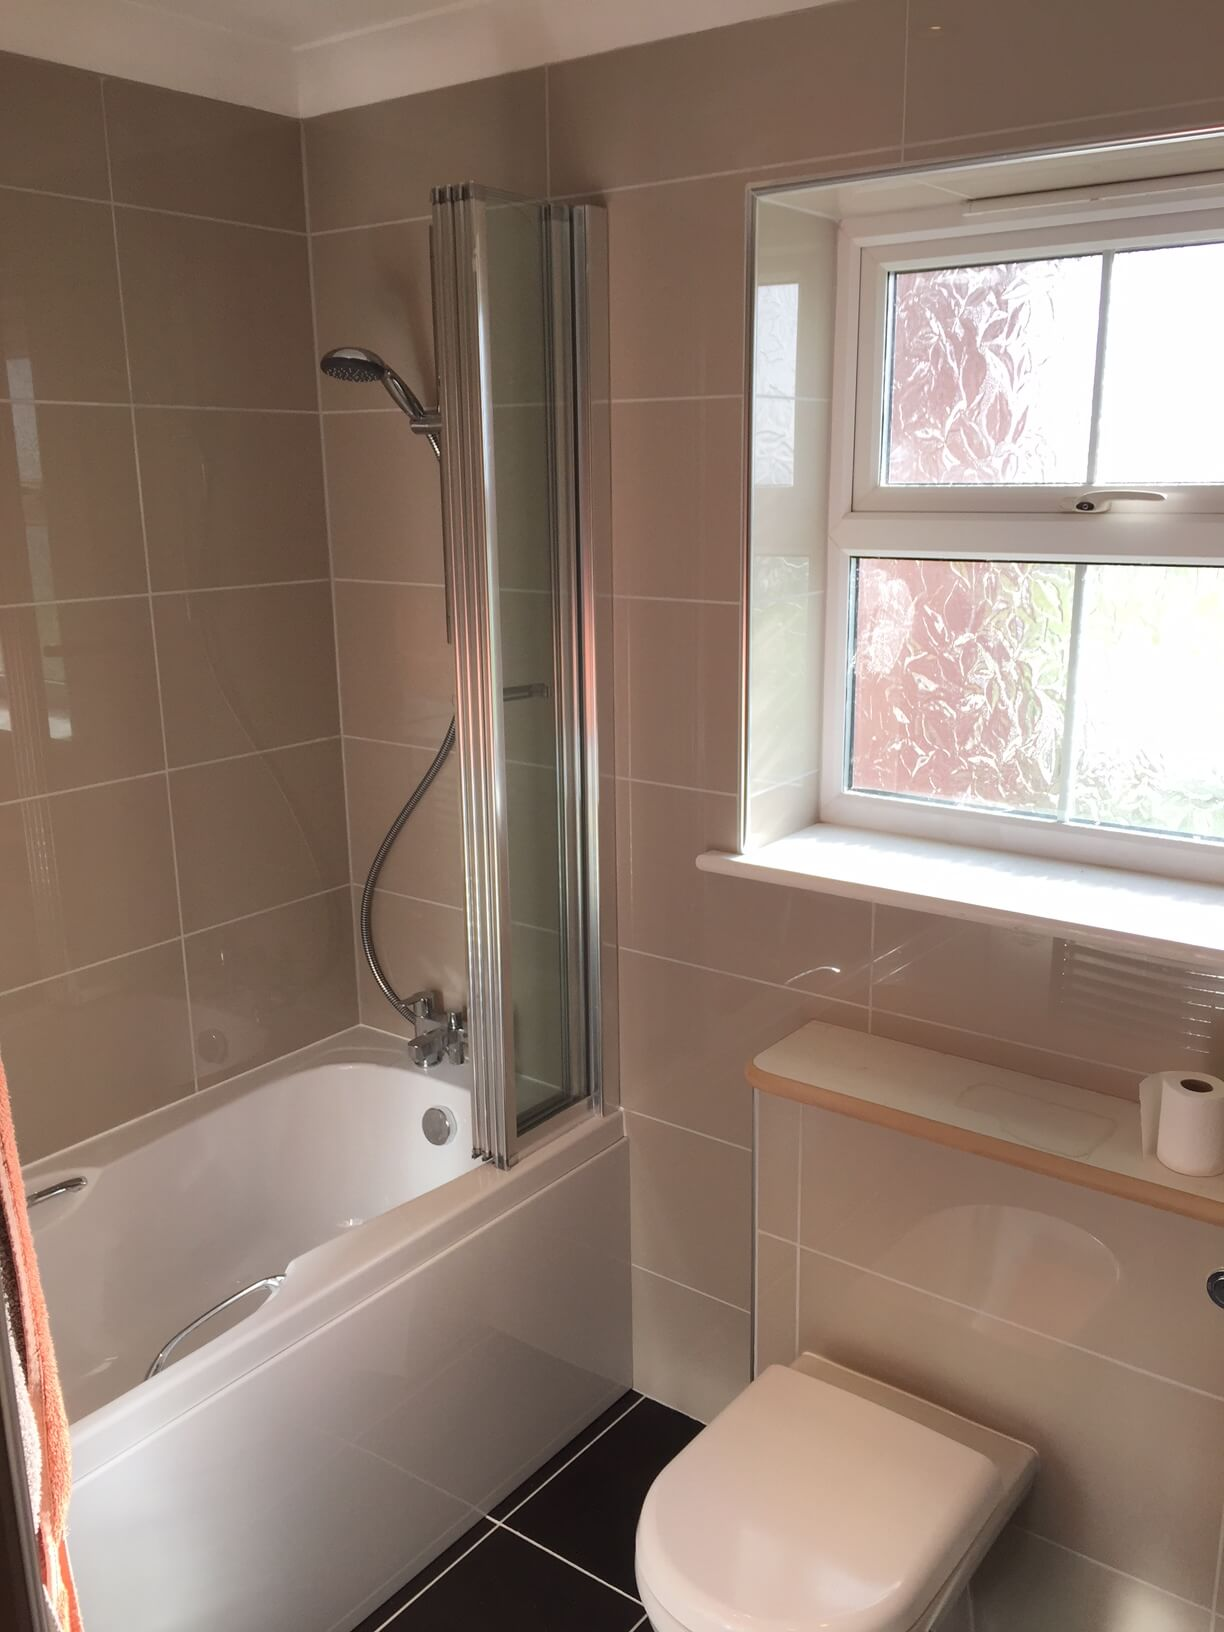 New shower and screen installed